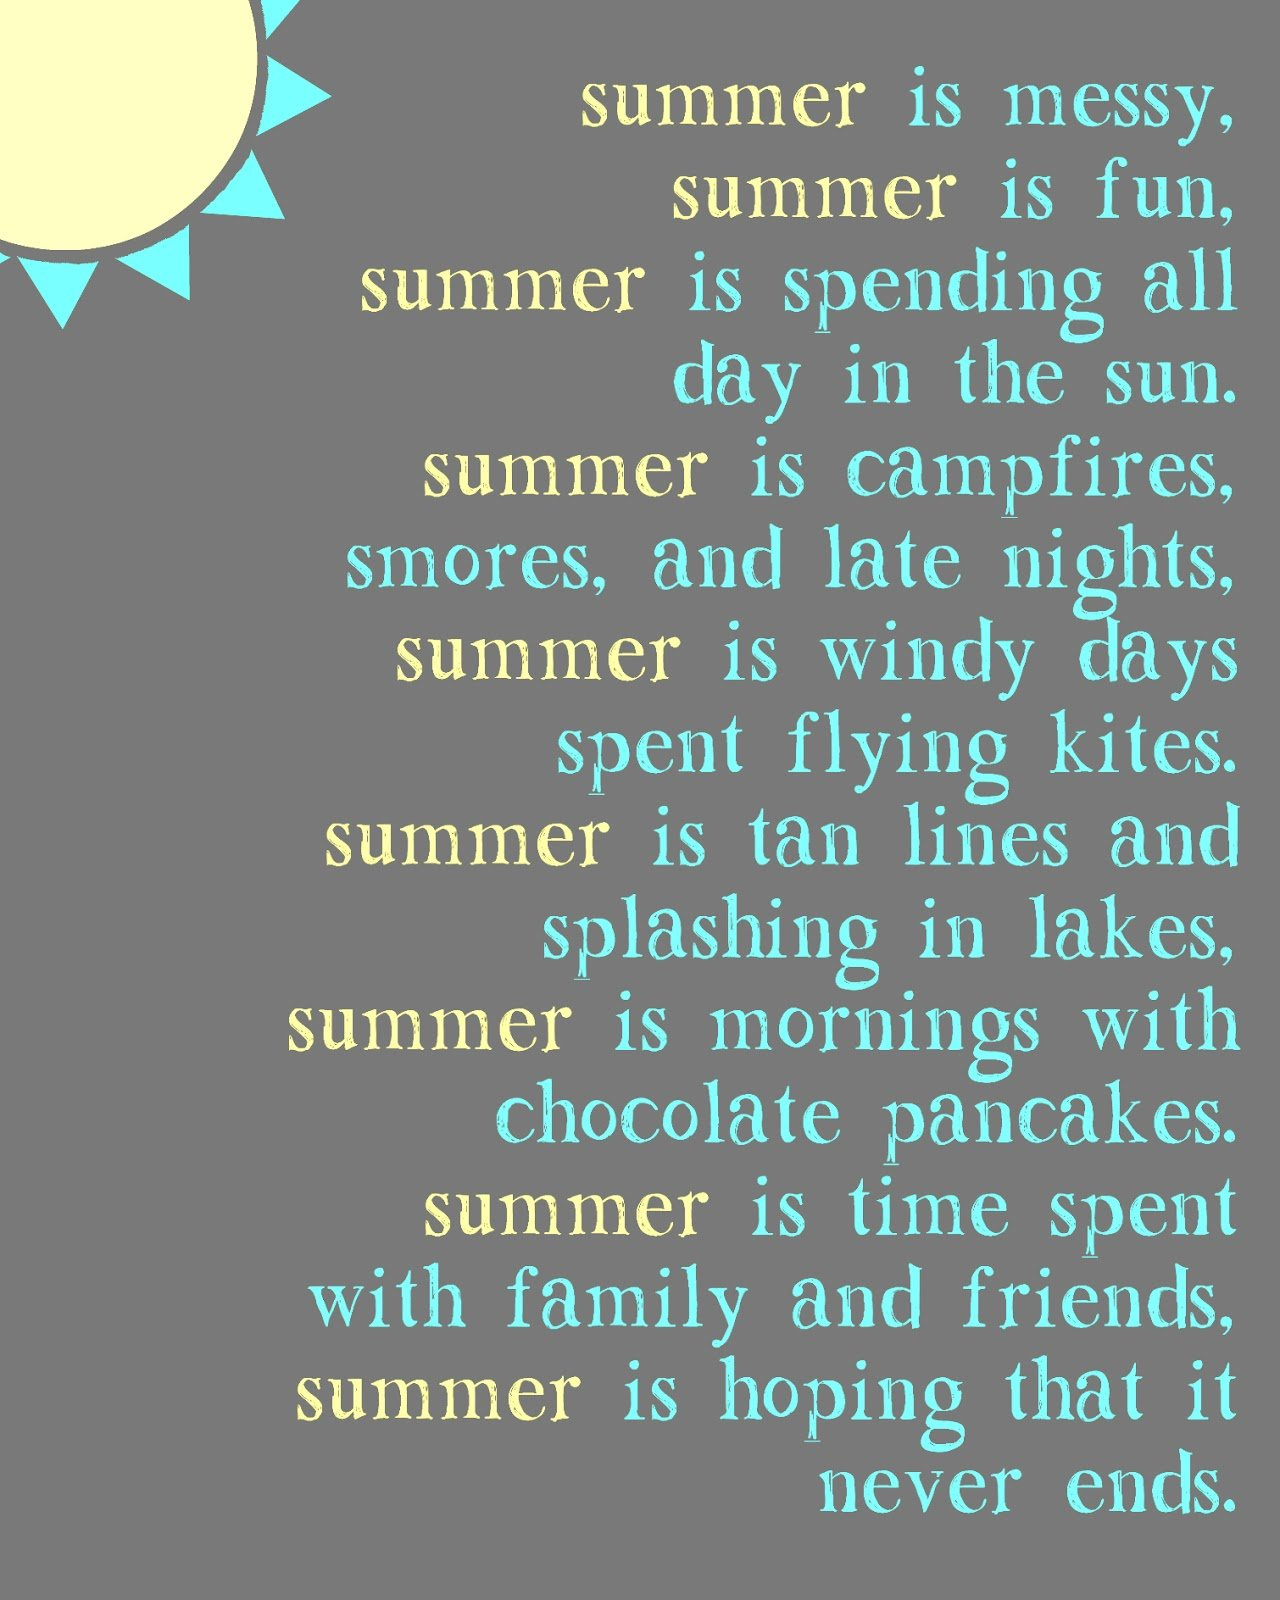 Simple Summer Quotes Quotesgram. Recovery Humor Quotes. Trust Quotes Famous. God Quotes For Motivation. Winnie The Pooh Quotes Not Knot. Sweet Quotes For Him English. Beach House Quotes And Sayings. Fashion Quotes Identity. Love Quotes About Him